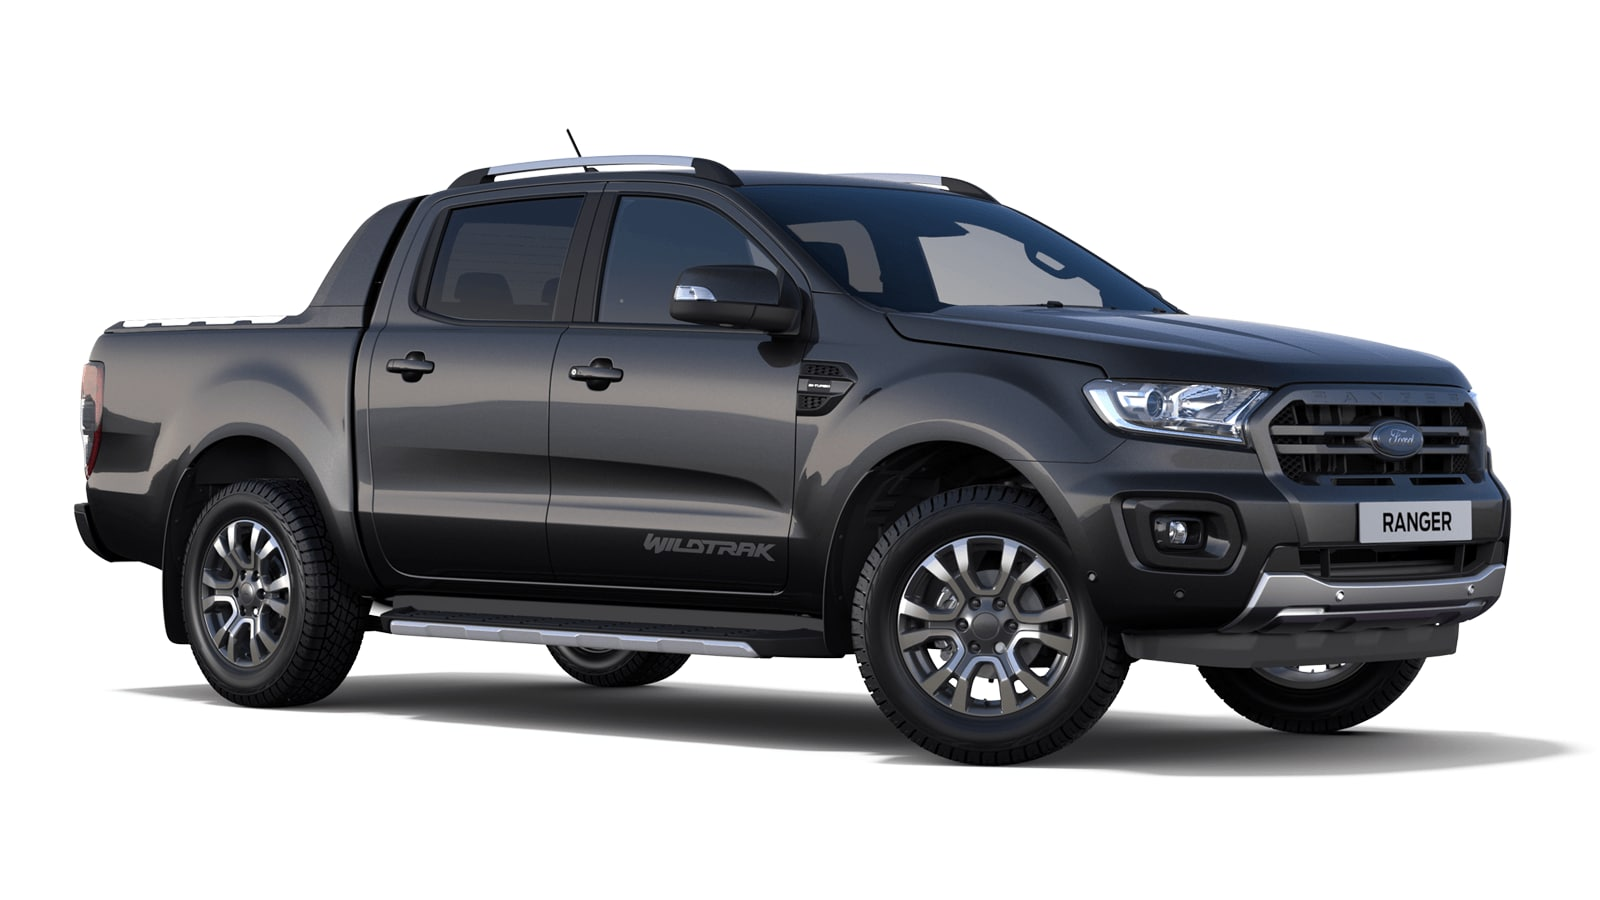 https://www.dealerinternet.co.uk/images/RANGER/2019.5/Double%20Cab/Wildtrak/SEA-GREY.png